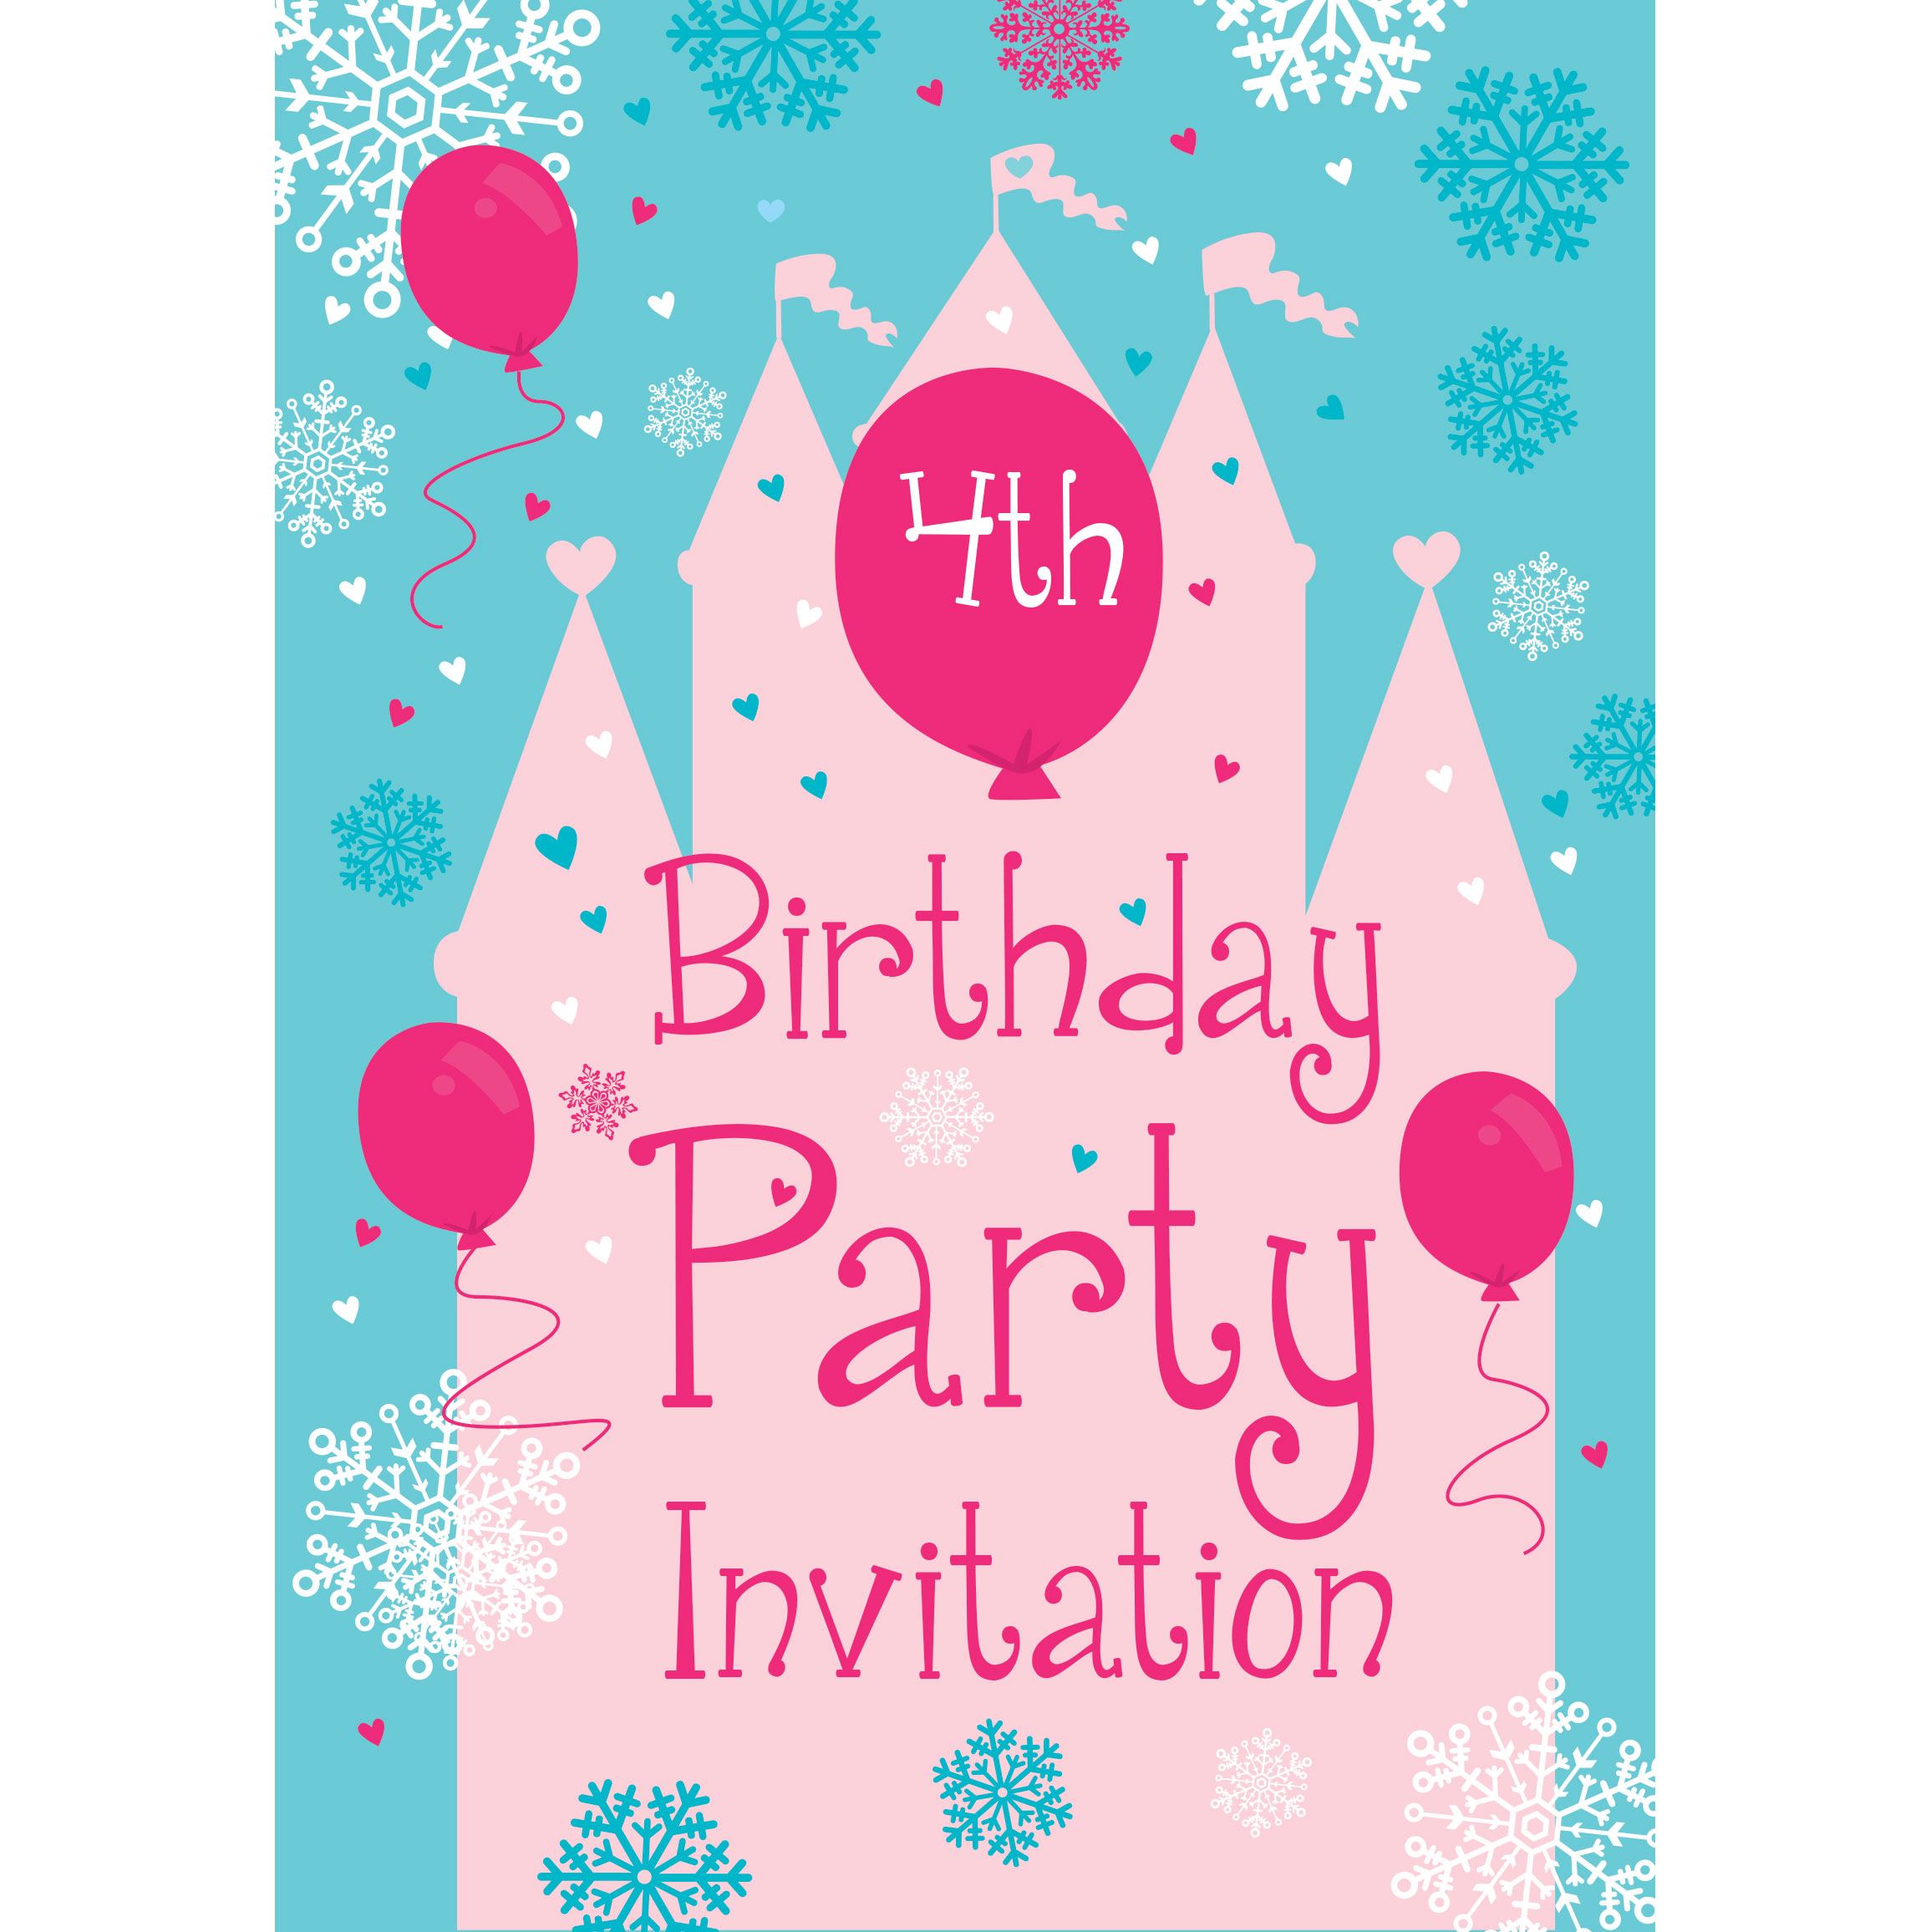 4th birthday party invitation - Fieldstation.co